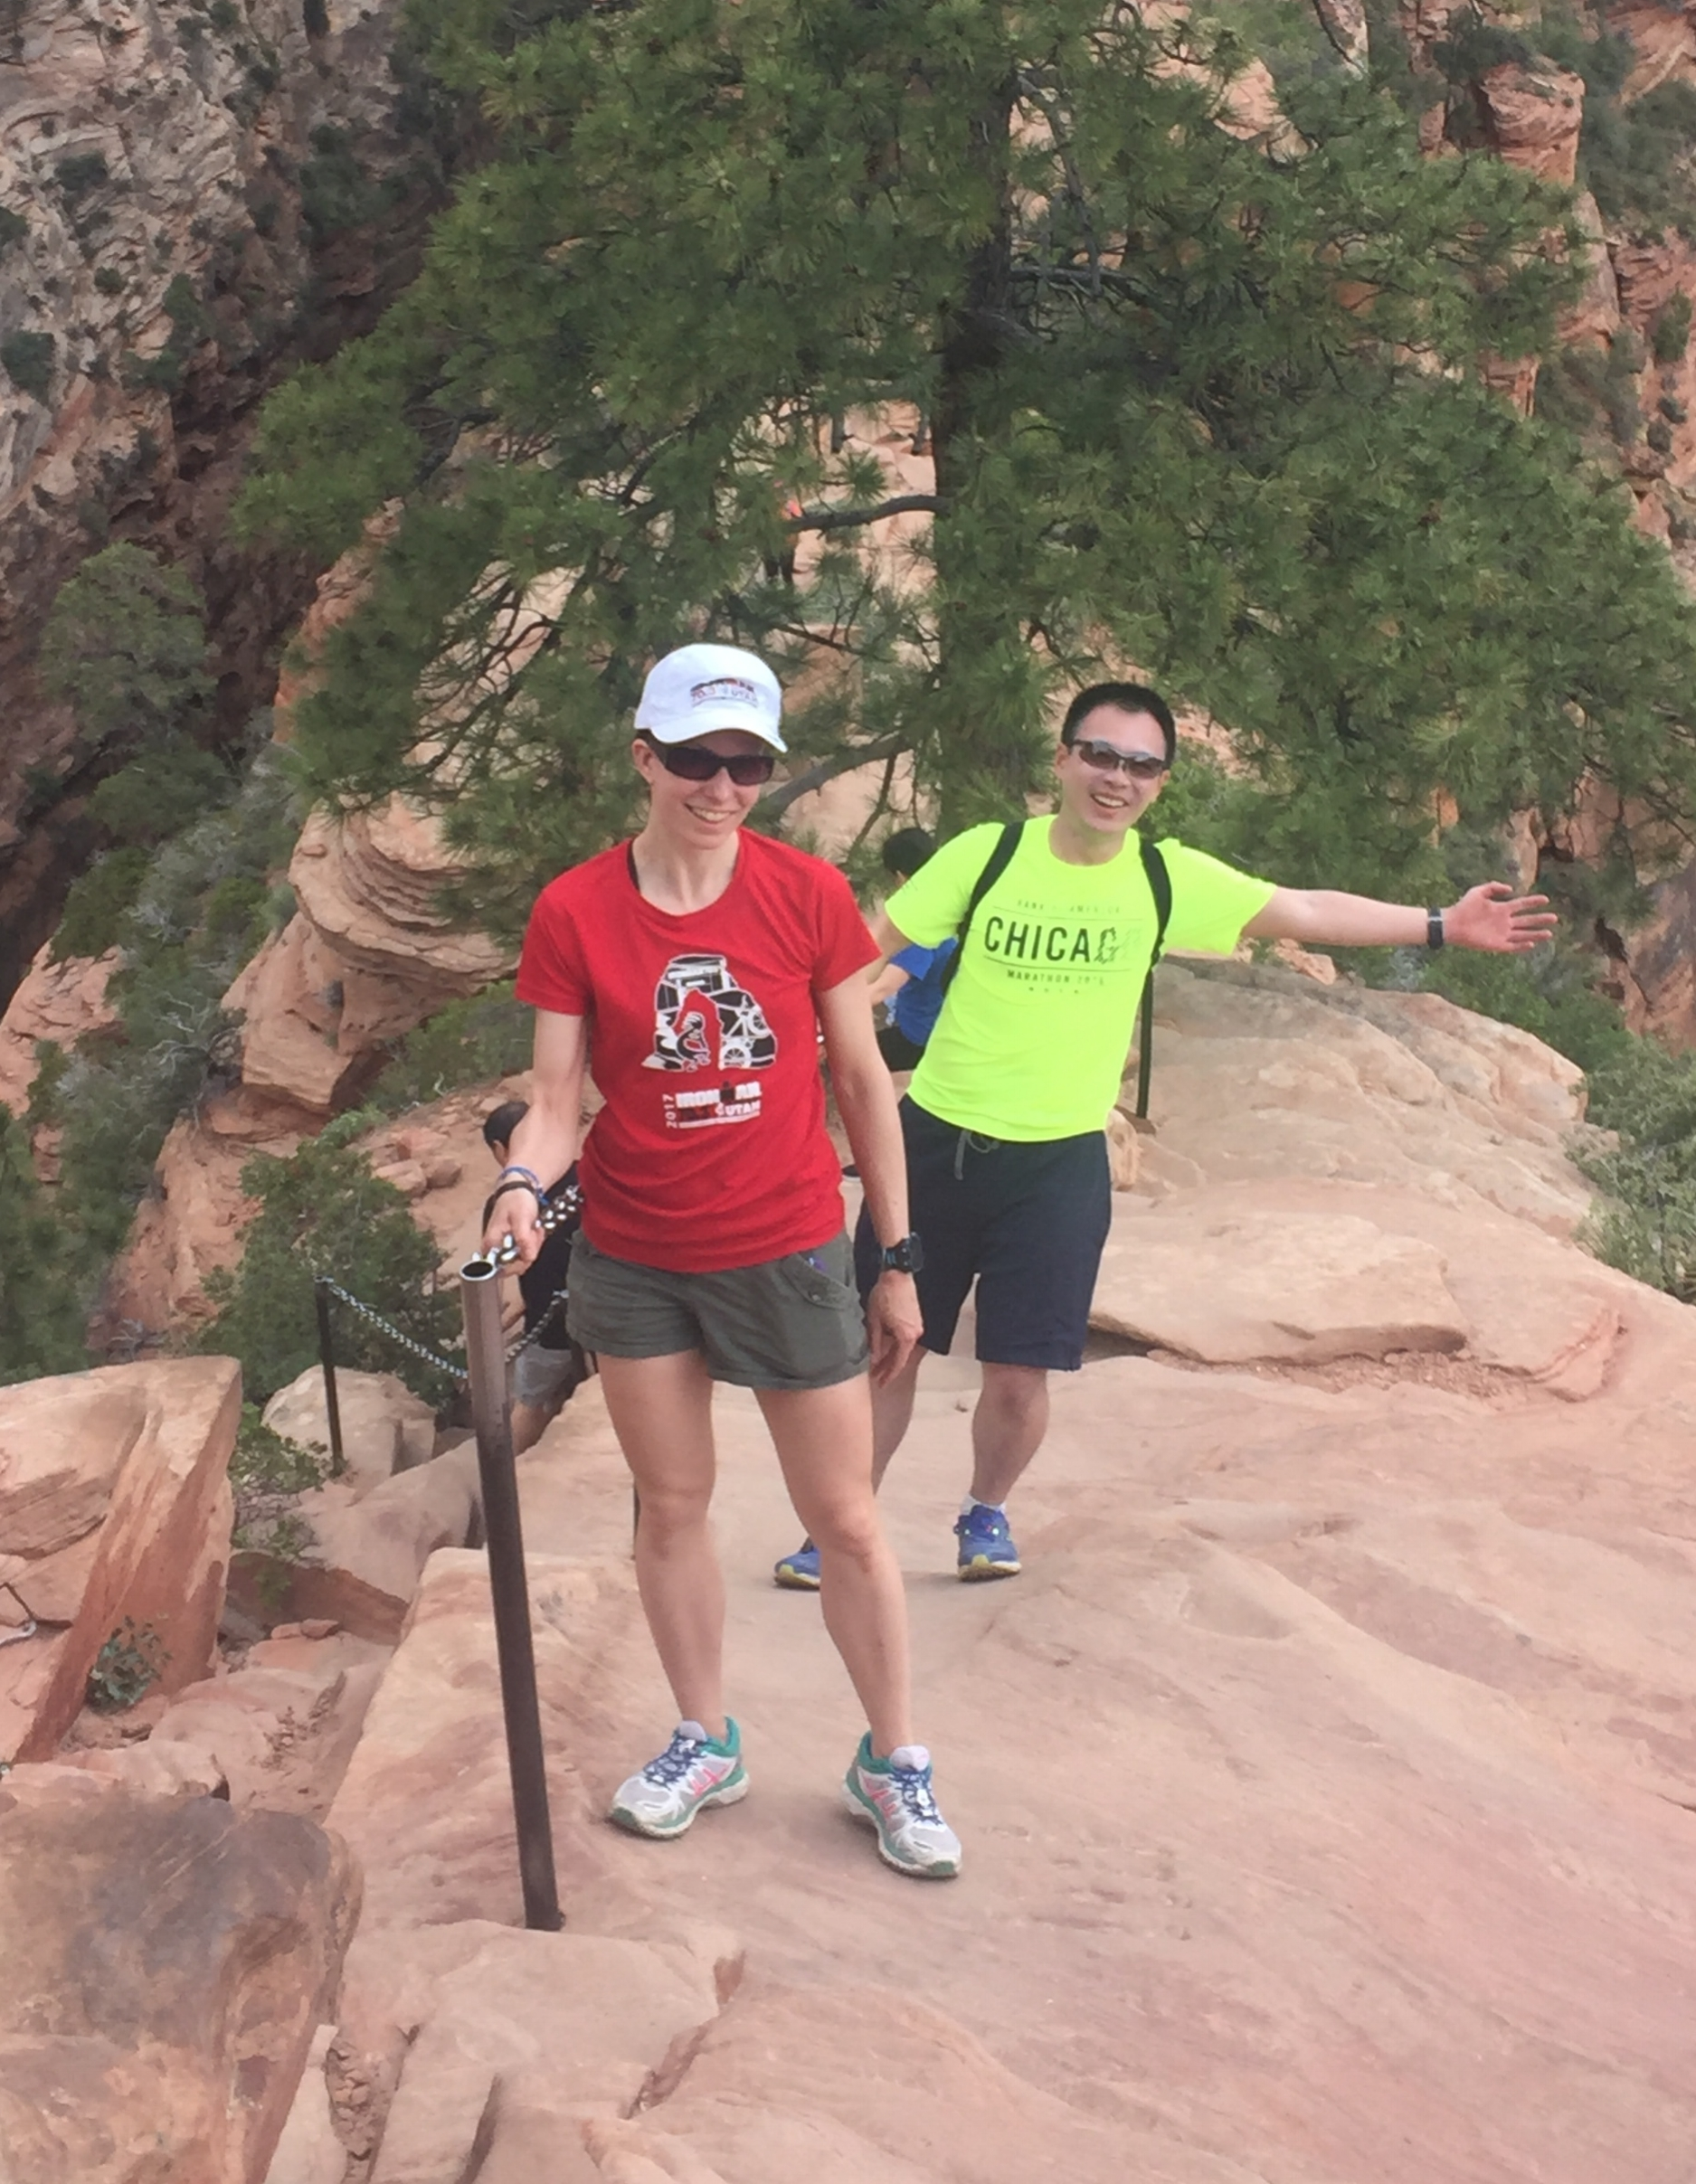 Post-race fun at Zion National Park